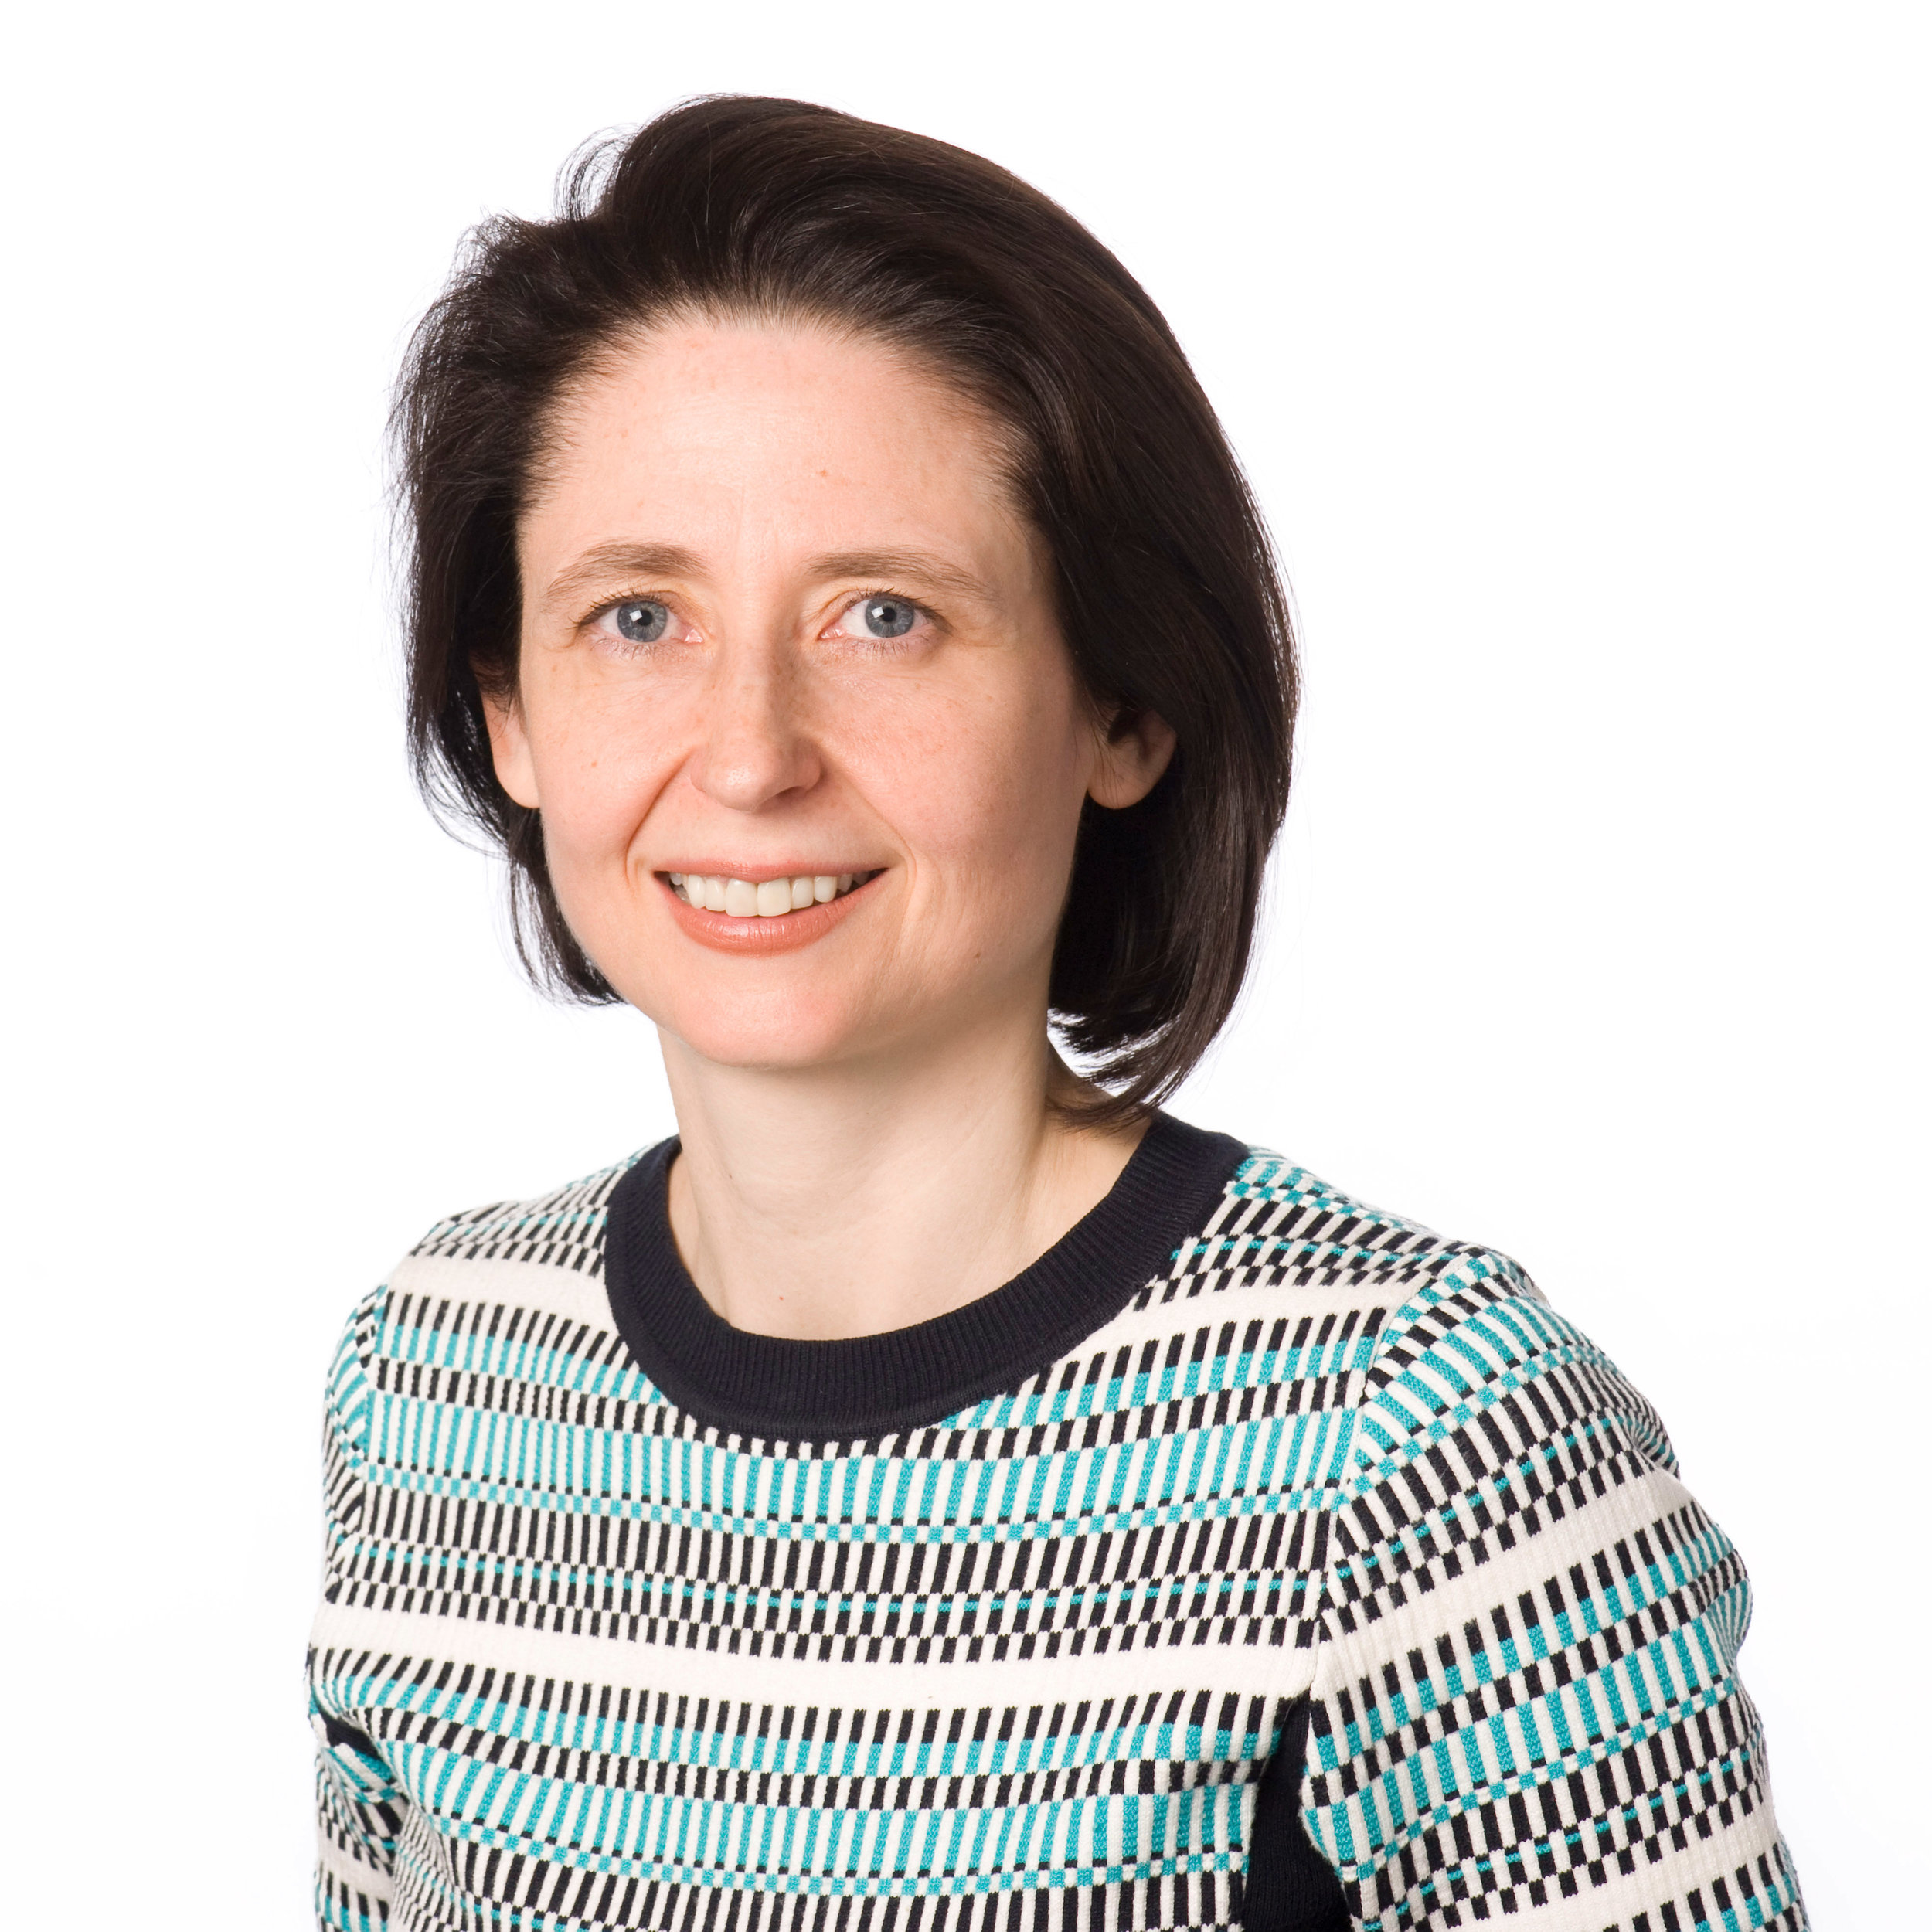 Dr Karen Croxson - Head of Research and Deputy Chief Economist at the UK Financial Conduct AuthorityRead Biography